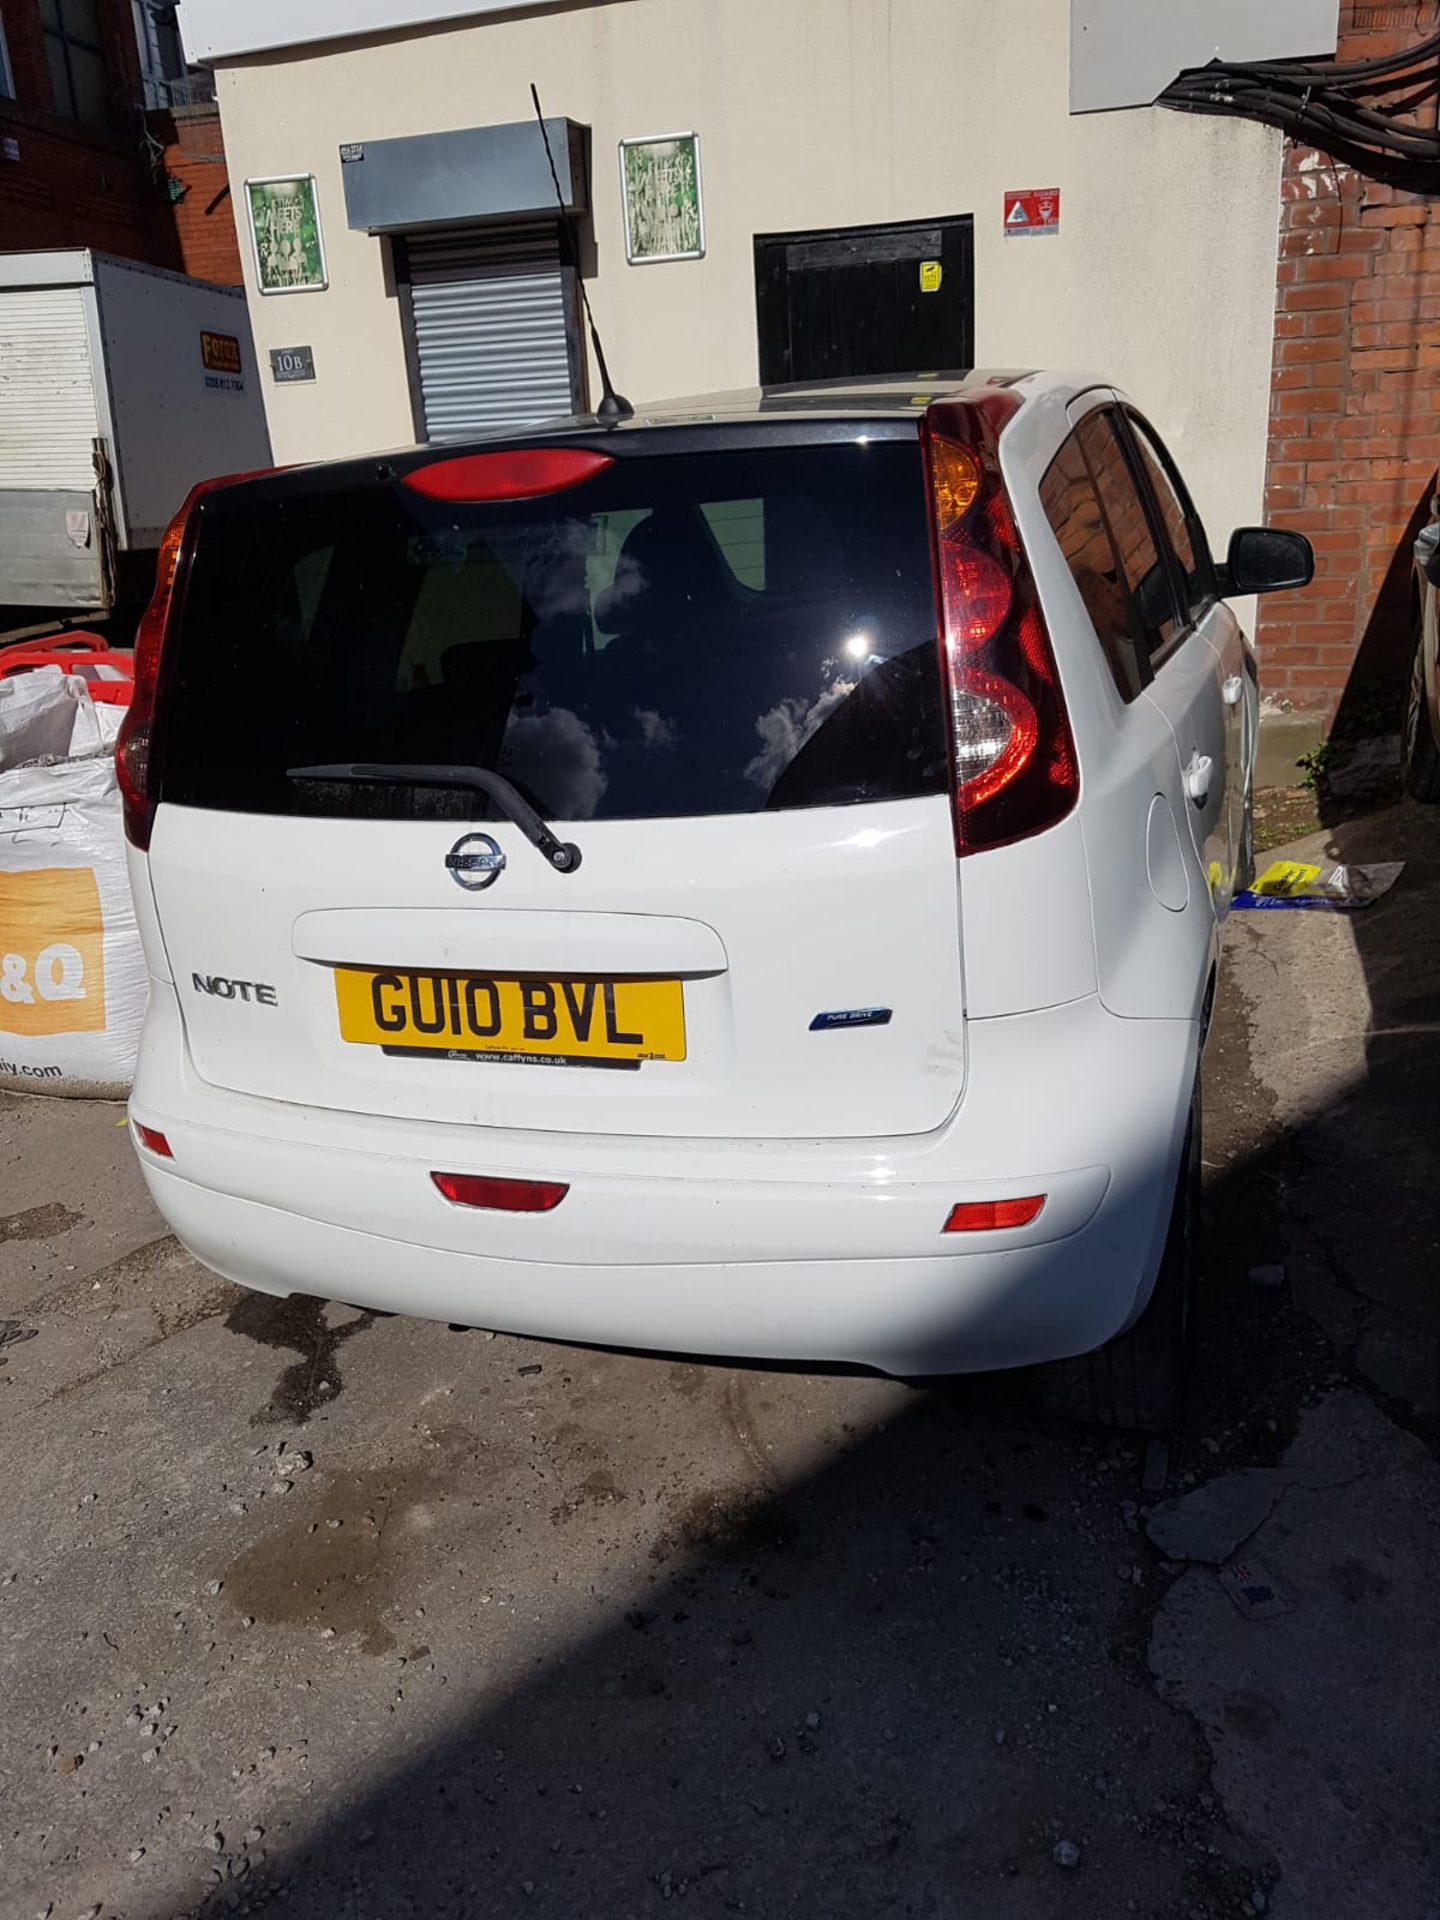 WHITE NISSAN NOTE 2010 GU10 BVL 61000 MILES COLLECTION MANCHESTER - Image 3 of 4